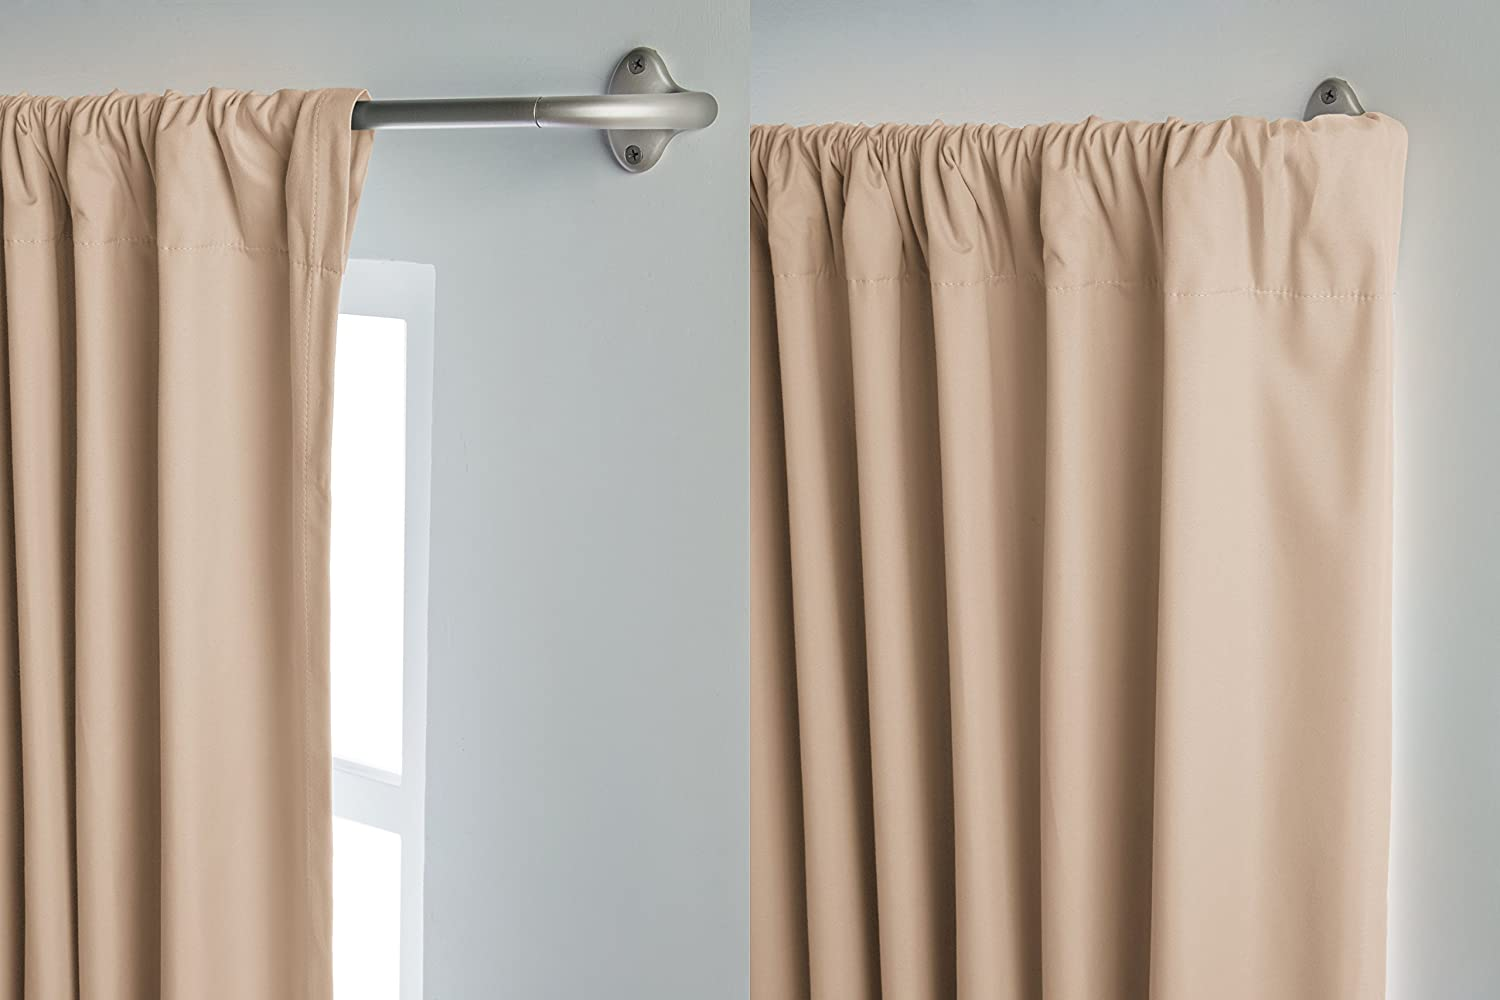 "AmazonBasics Room-Darkening Curtain Rod - 48"" to 88"", Nicke"